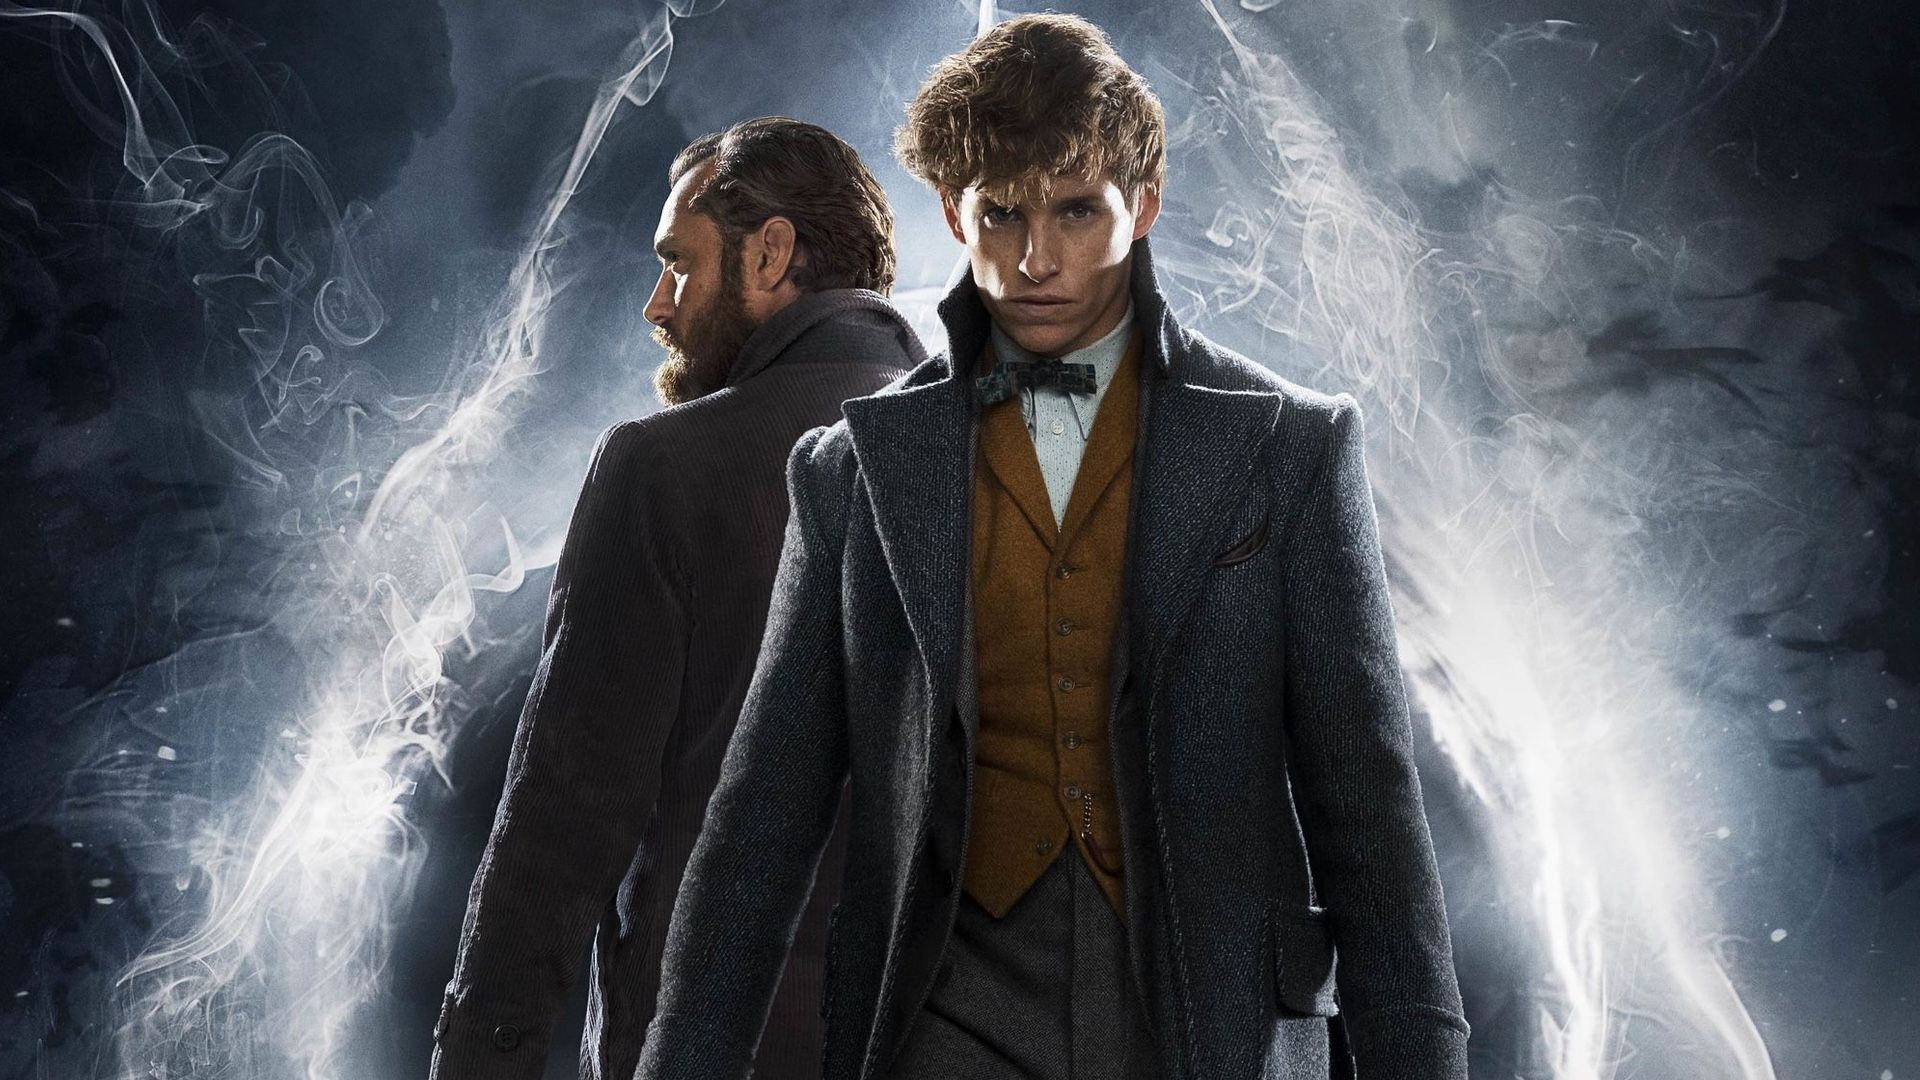 New Fantastic Beasts 2 Featurette Highlights The Harry Potter